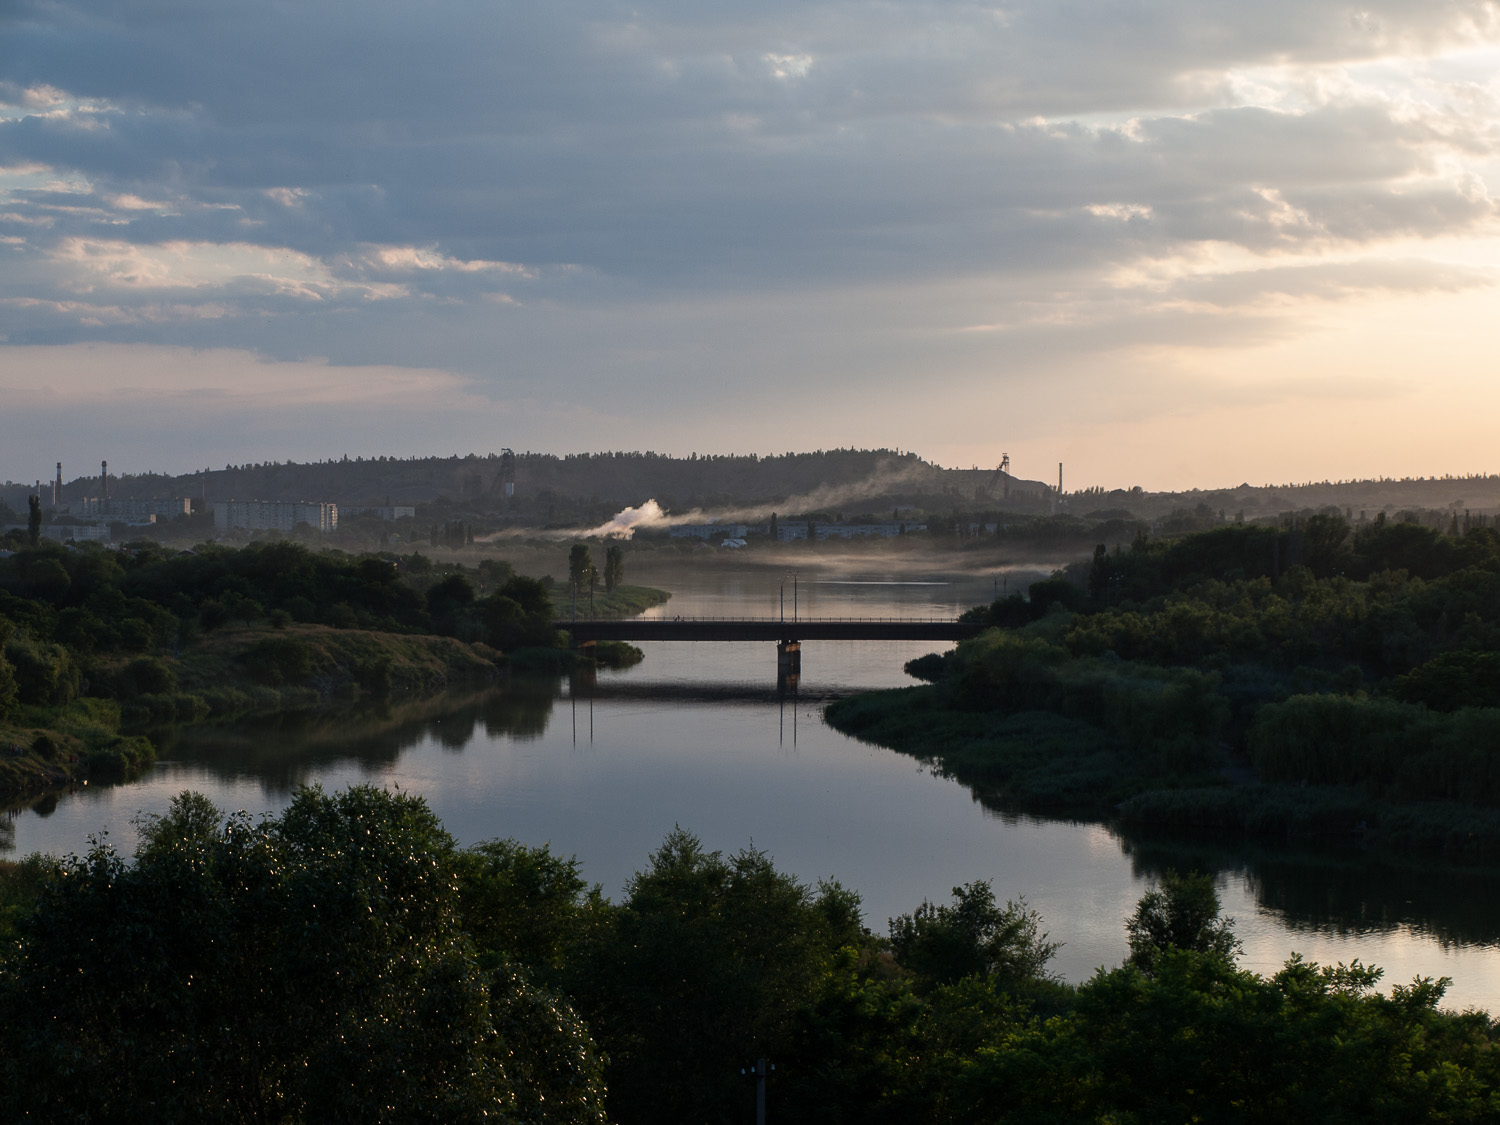 A view over the Inhulets river at Kryvyi Rih. Headframes for the city's numerous iron ore mines are visible in the background.